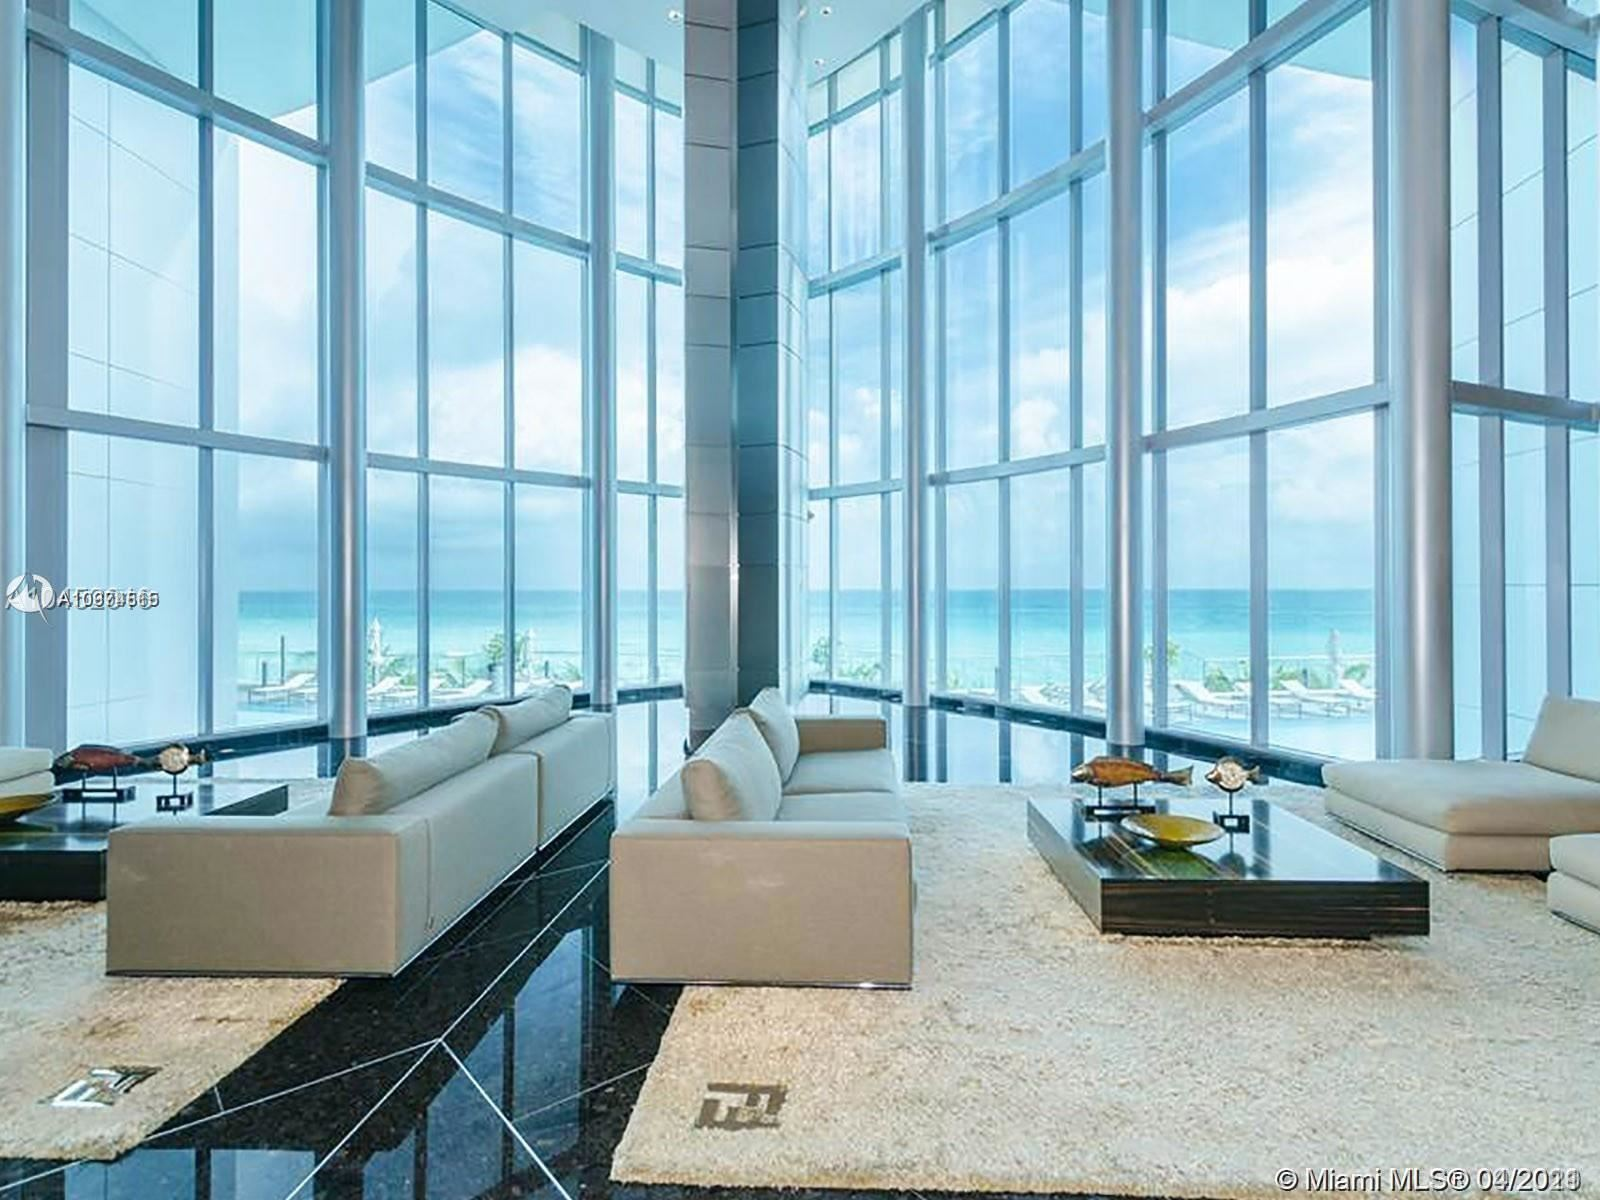 17001 Collins Ave #3101, Sunny Isles, FL 33160 - #: A10974515